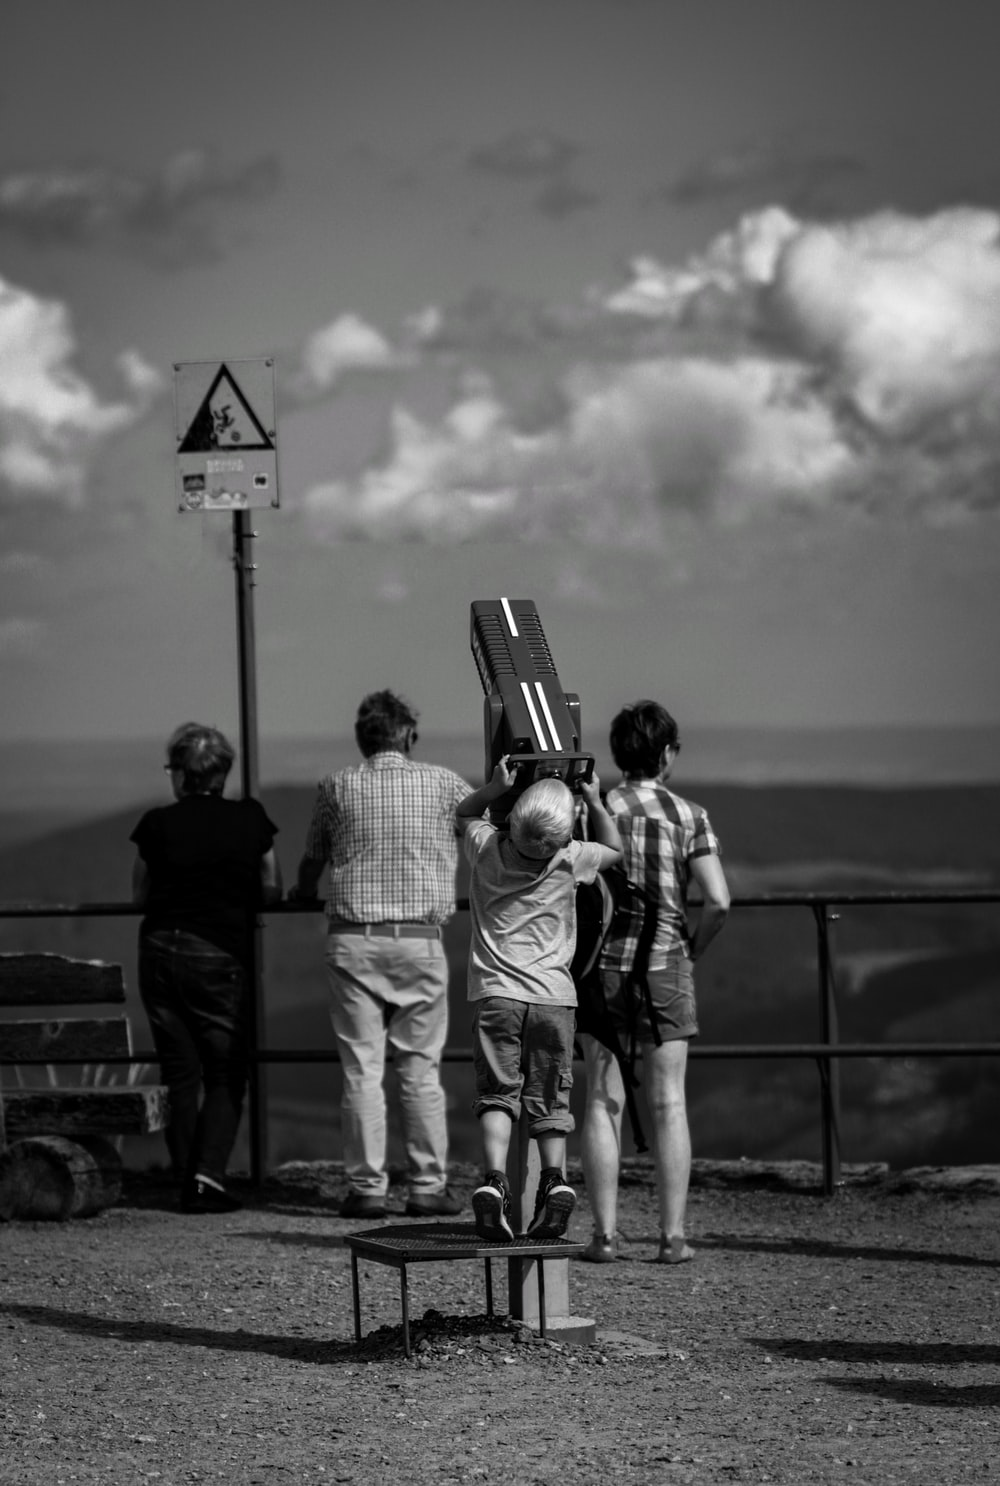 grayscale photography of four person standing while looking on mountain ranges